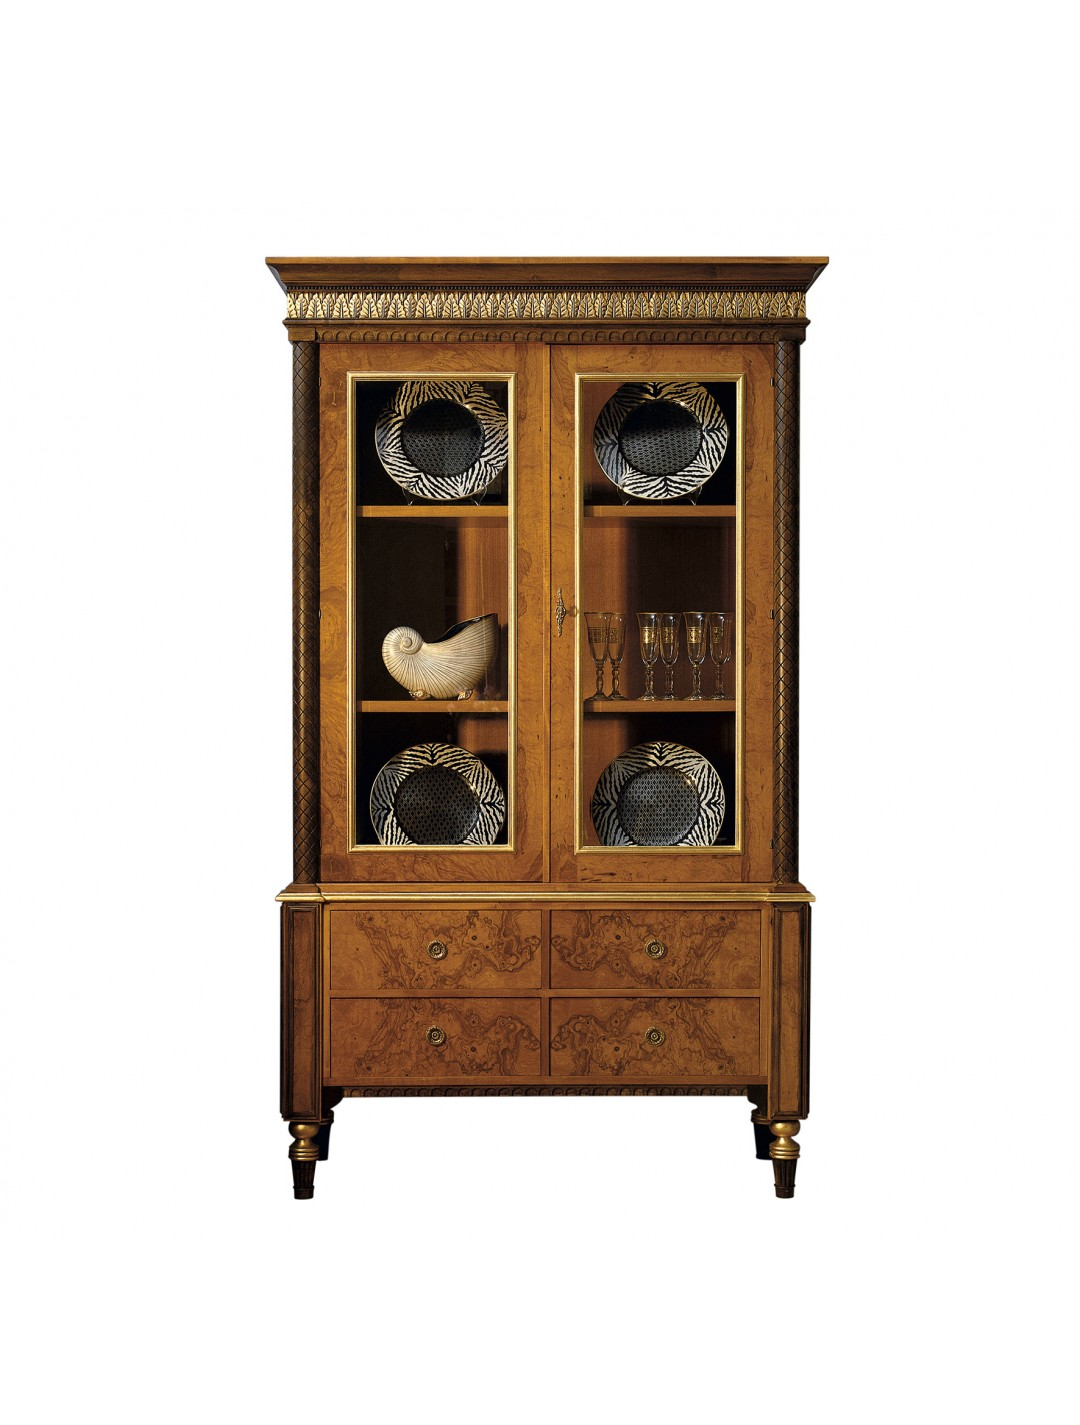 ATENEA DISPLAY CABINET, AGED OLIVE TREE ROOT VENEER DETAILS, WITH GLASS DOORS,